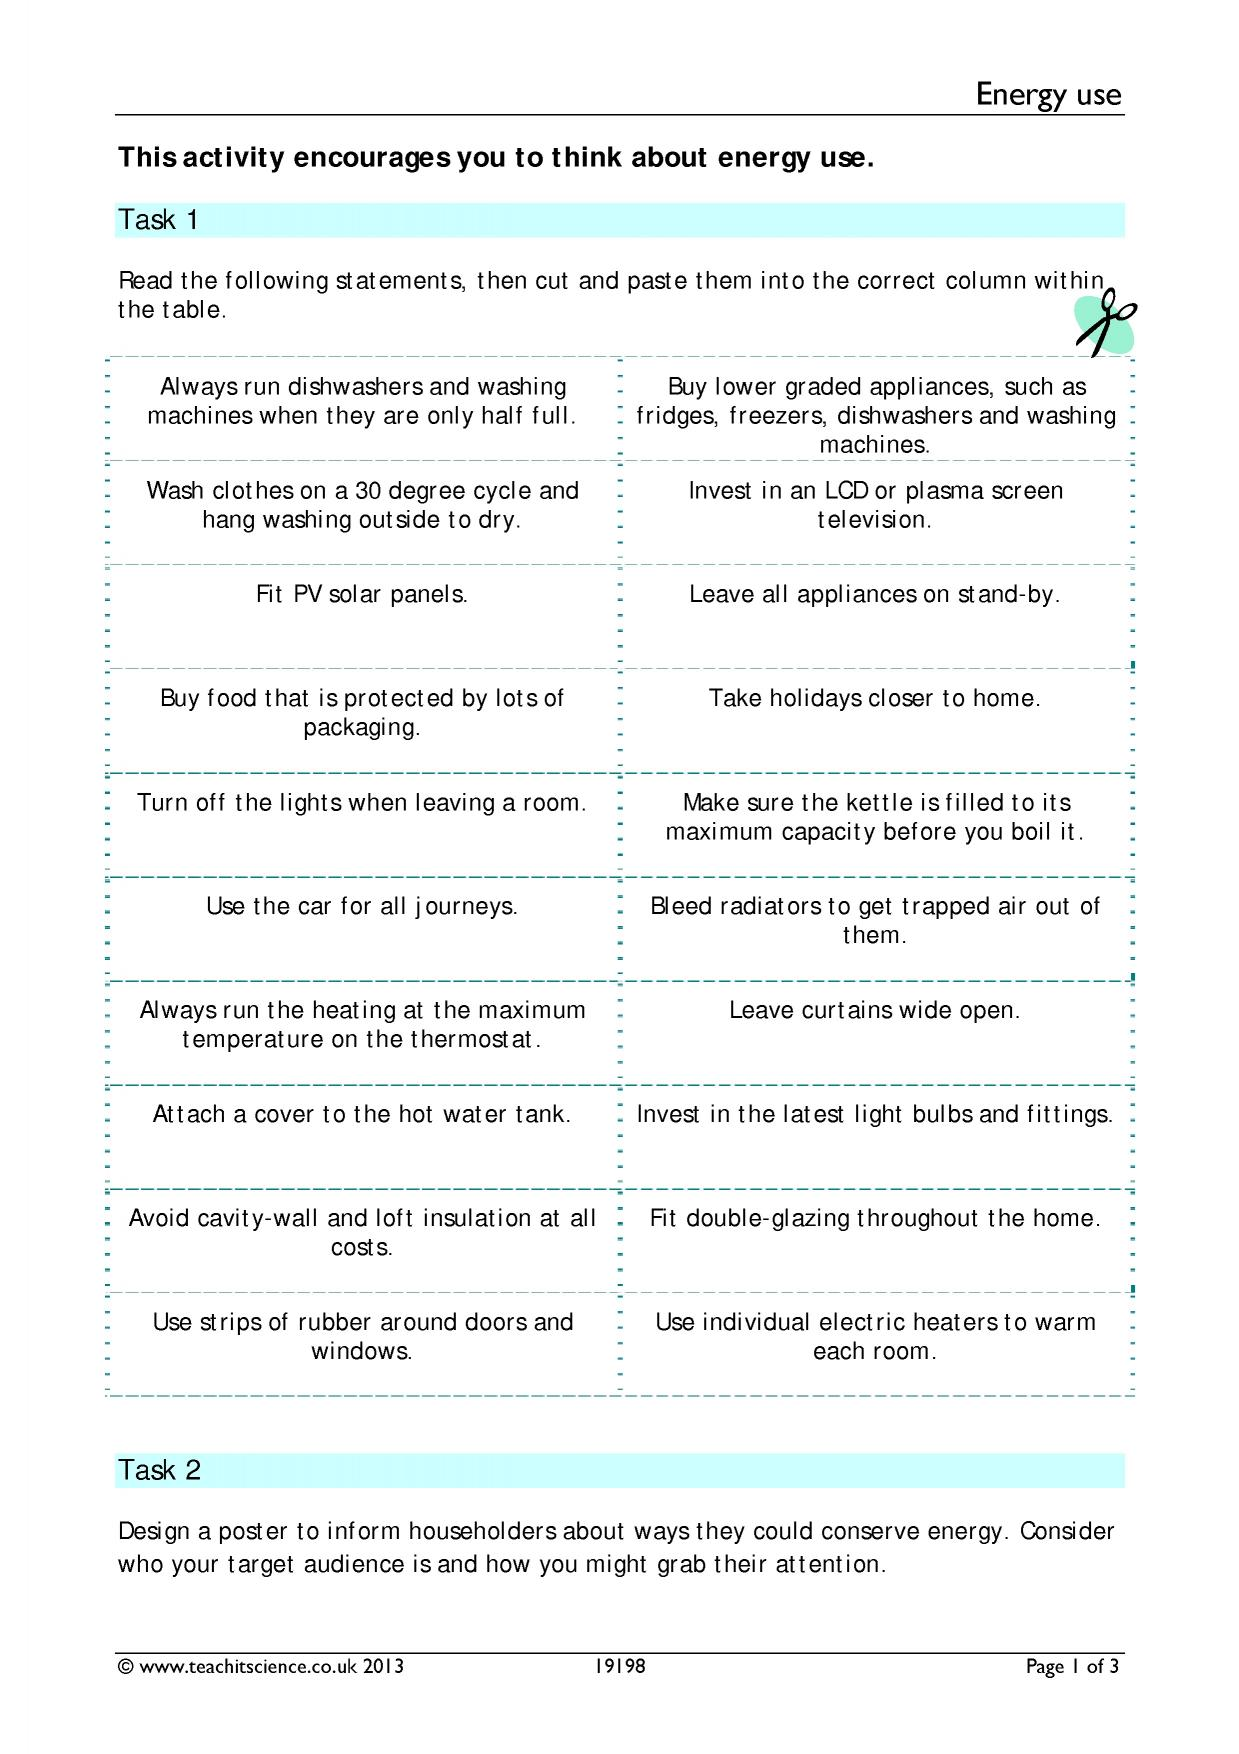 Singapore Math Worksheet Excel Ks Physics Teaching Resources  Worksheets And Interactive  Common Core Math Grade 4 Worksheets with Free Teacher Printable Worksheets Word  Preview Comprehension Practice Worksheets Word